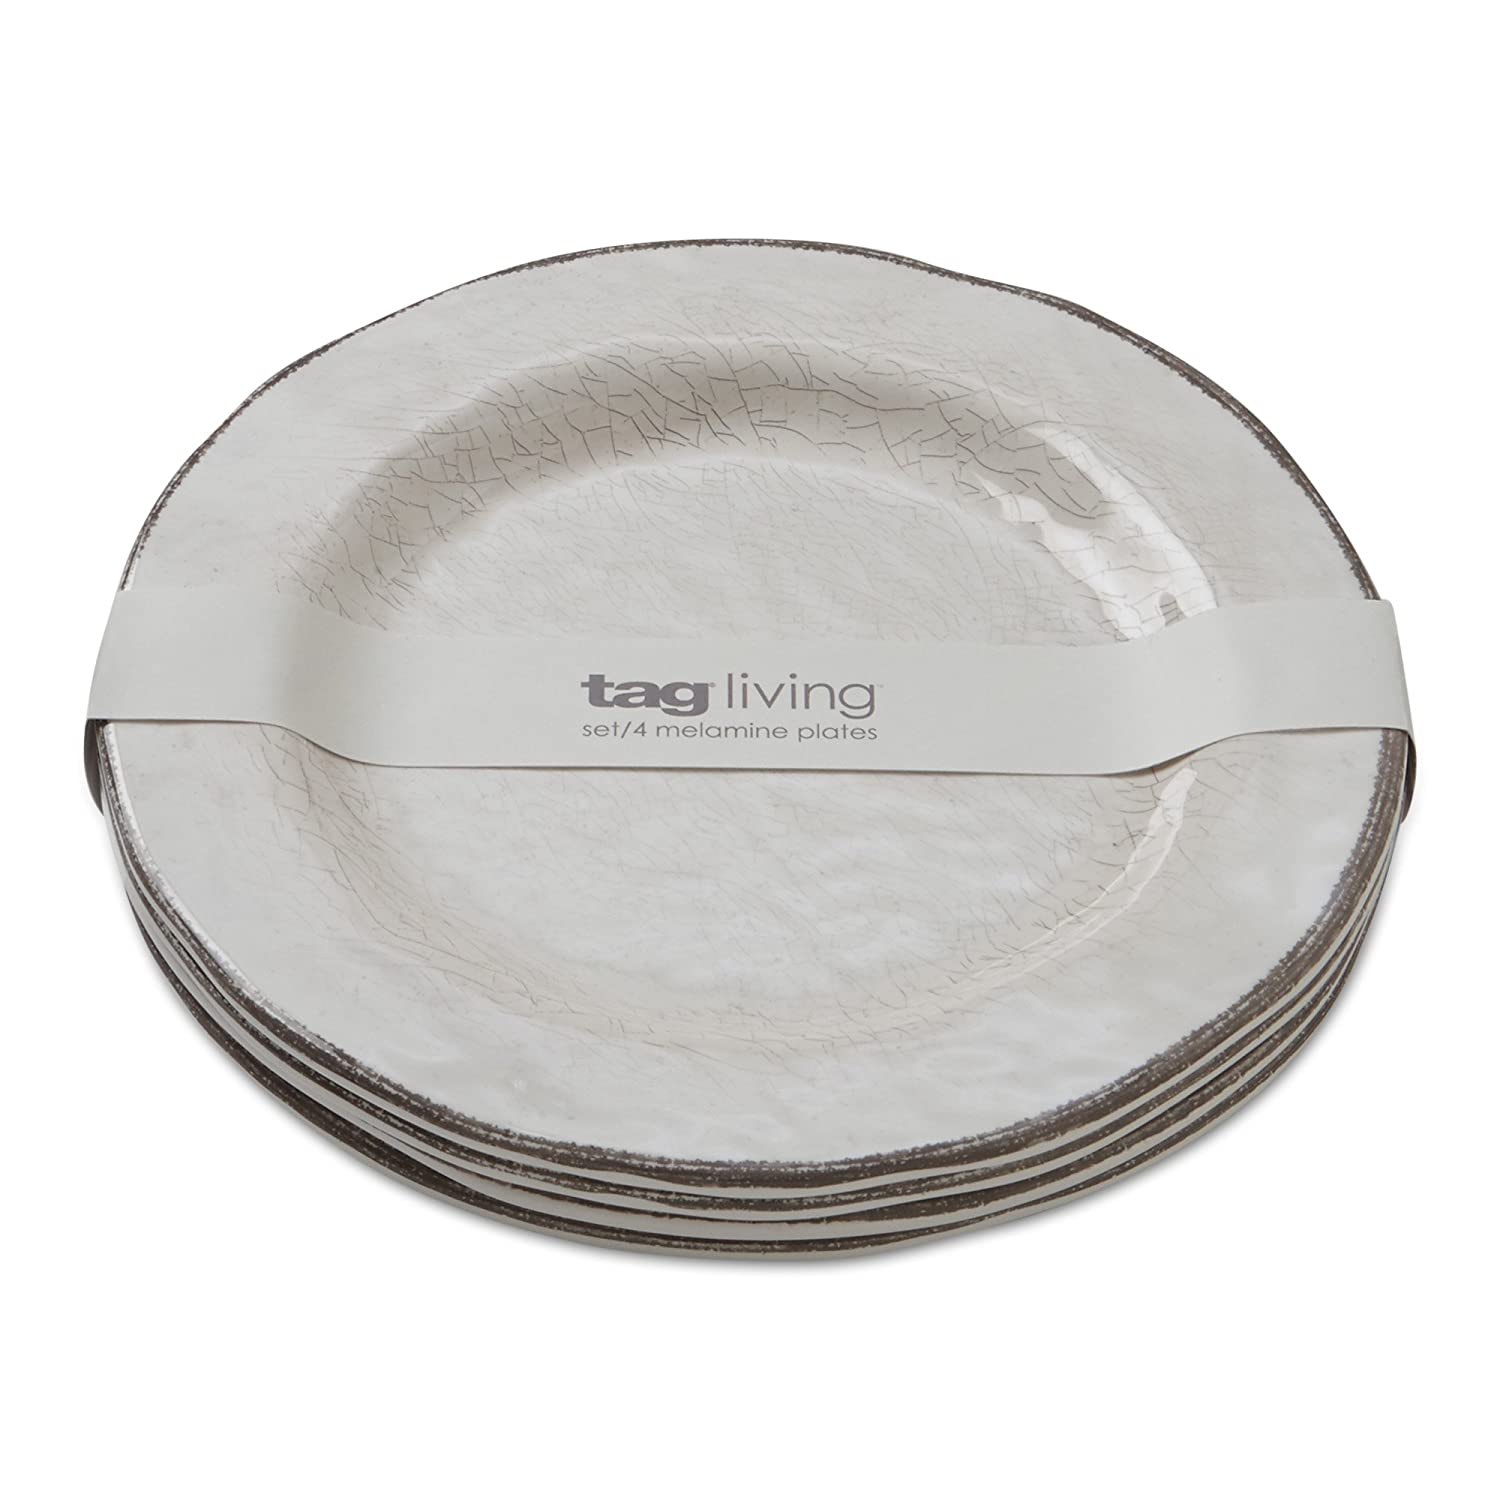 Amazon.com | tag - Veranda Melamine Salad Plate Durable BPA-Free and Great for Outdoor or Casual Meals Ivory (Set Of 4) Plates  sc 1 st  Amazon.com & Amazon.com | tag - Veranda Melamine Salad Plate Durable BPA-Free ...